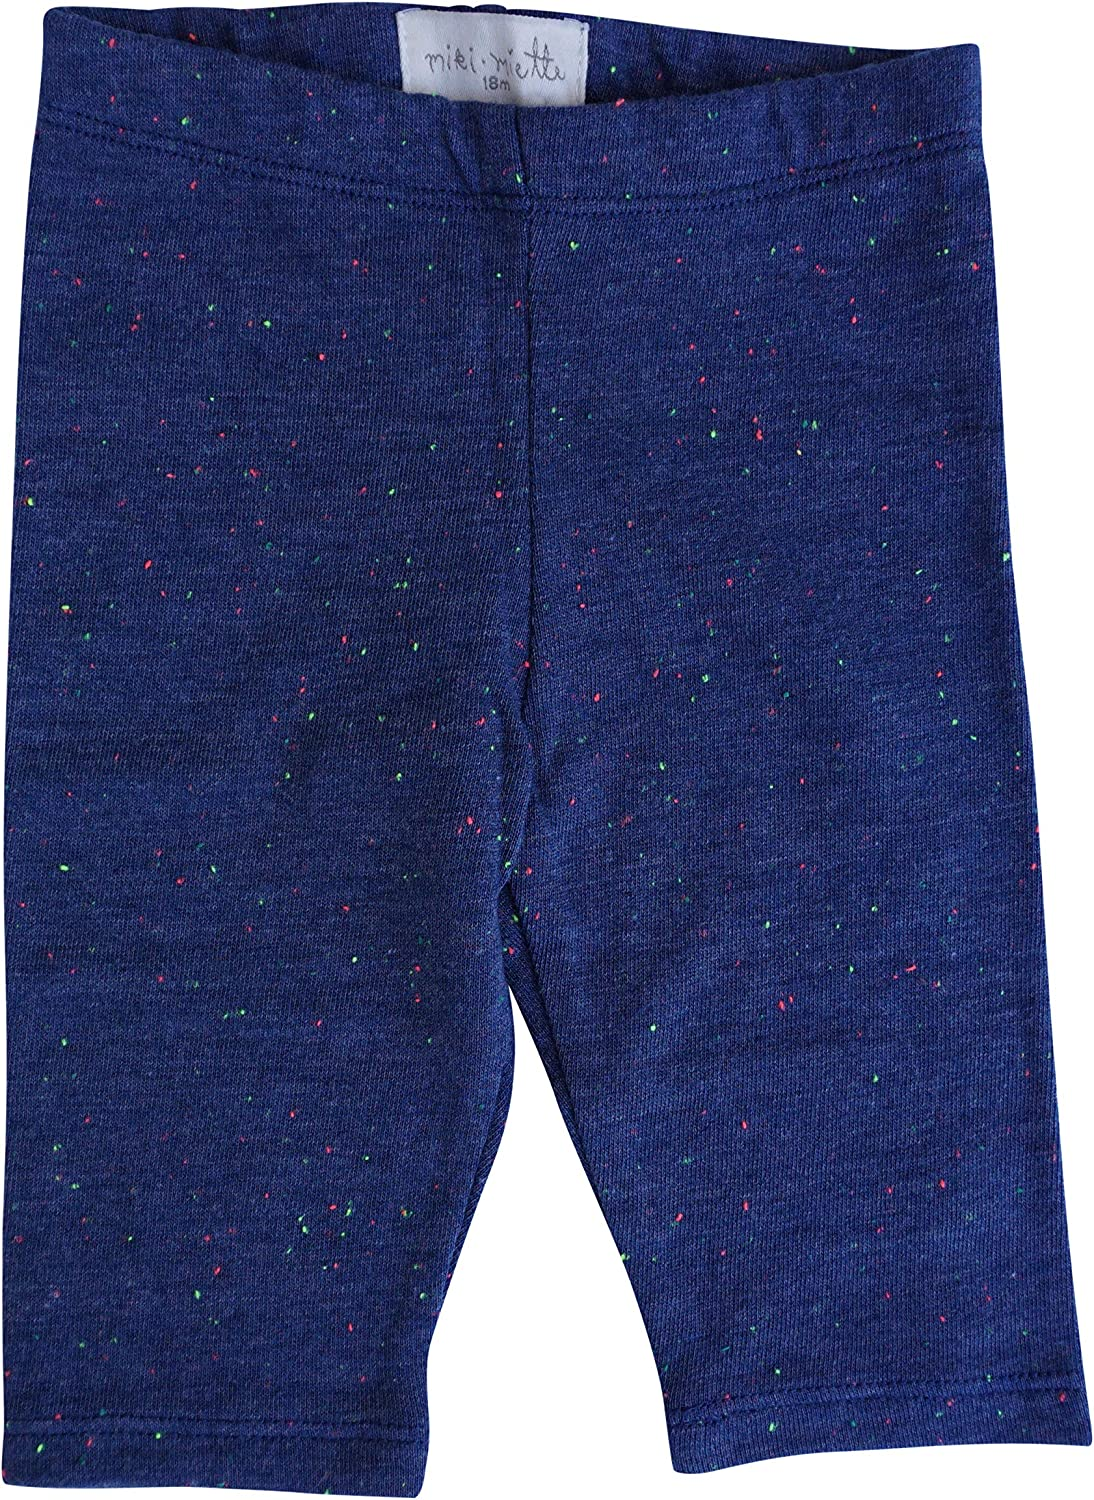 MikiMiette Baby Girls Crop Leggings Super Soft and Comfortbale 65% Cotton 35% Polyester: Clothing